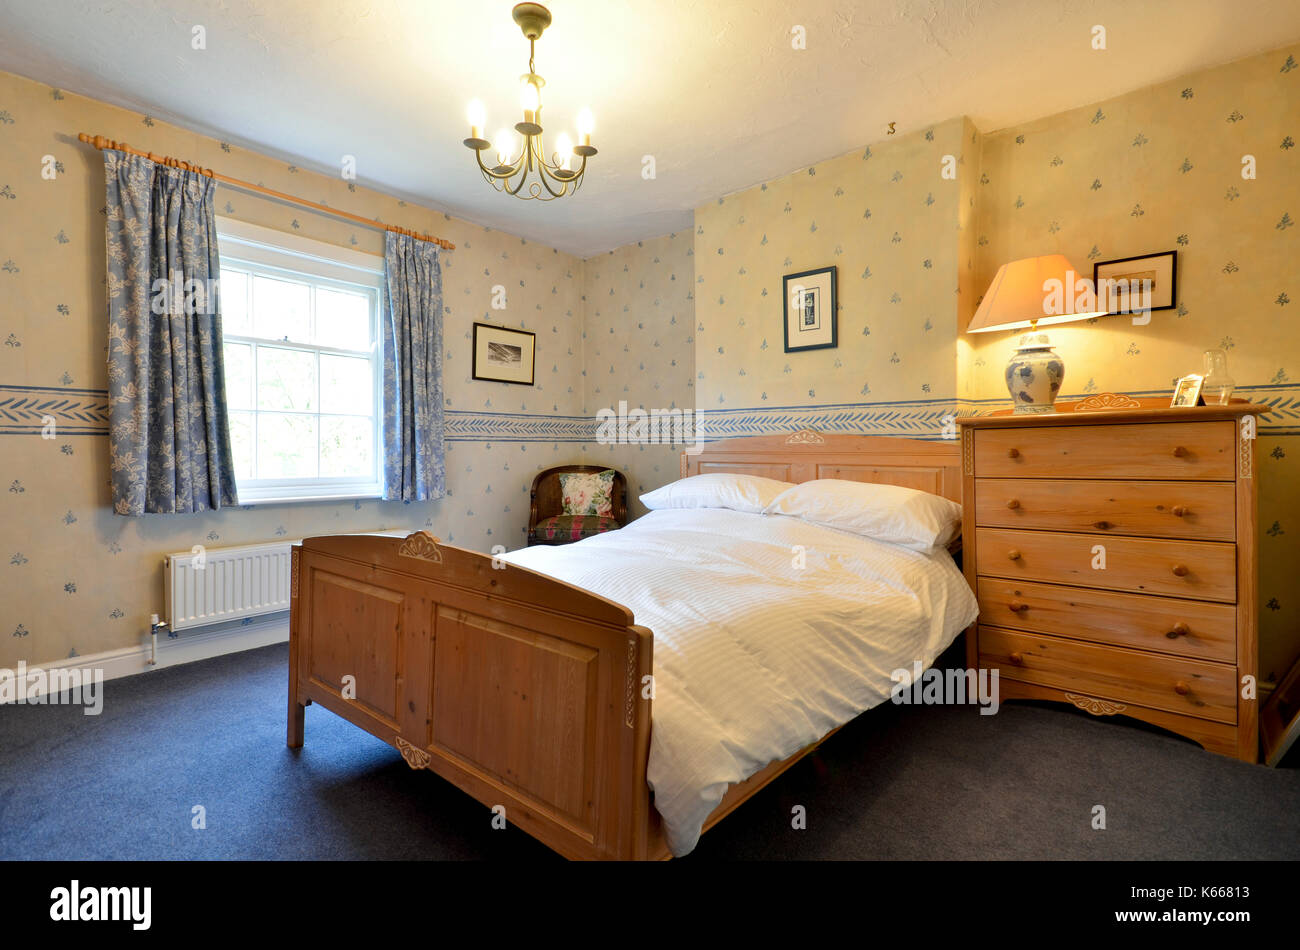 Guest bedroom in country cottage with pine furniture - Stock Image